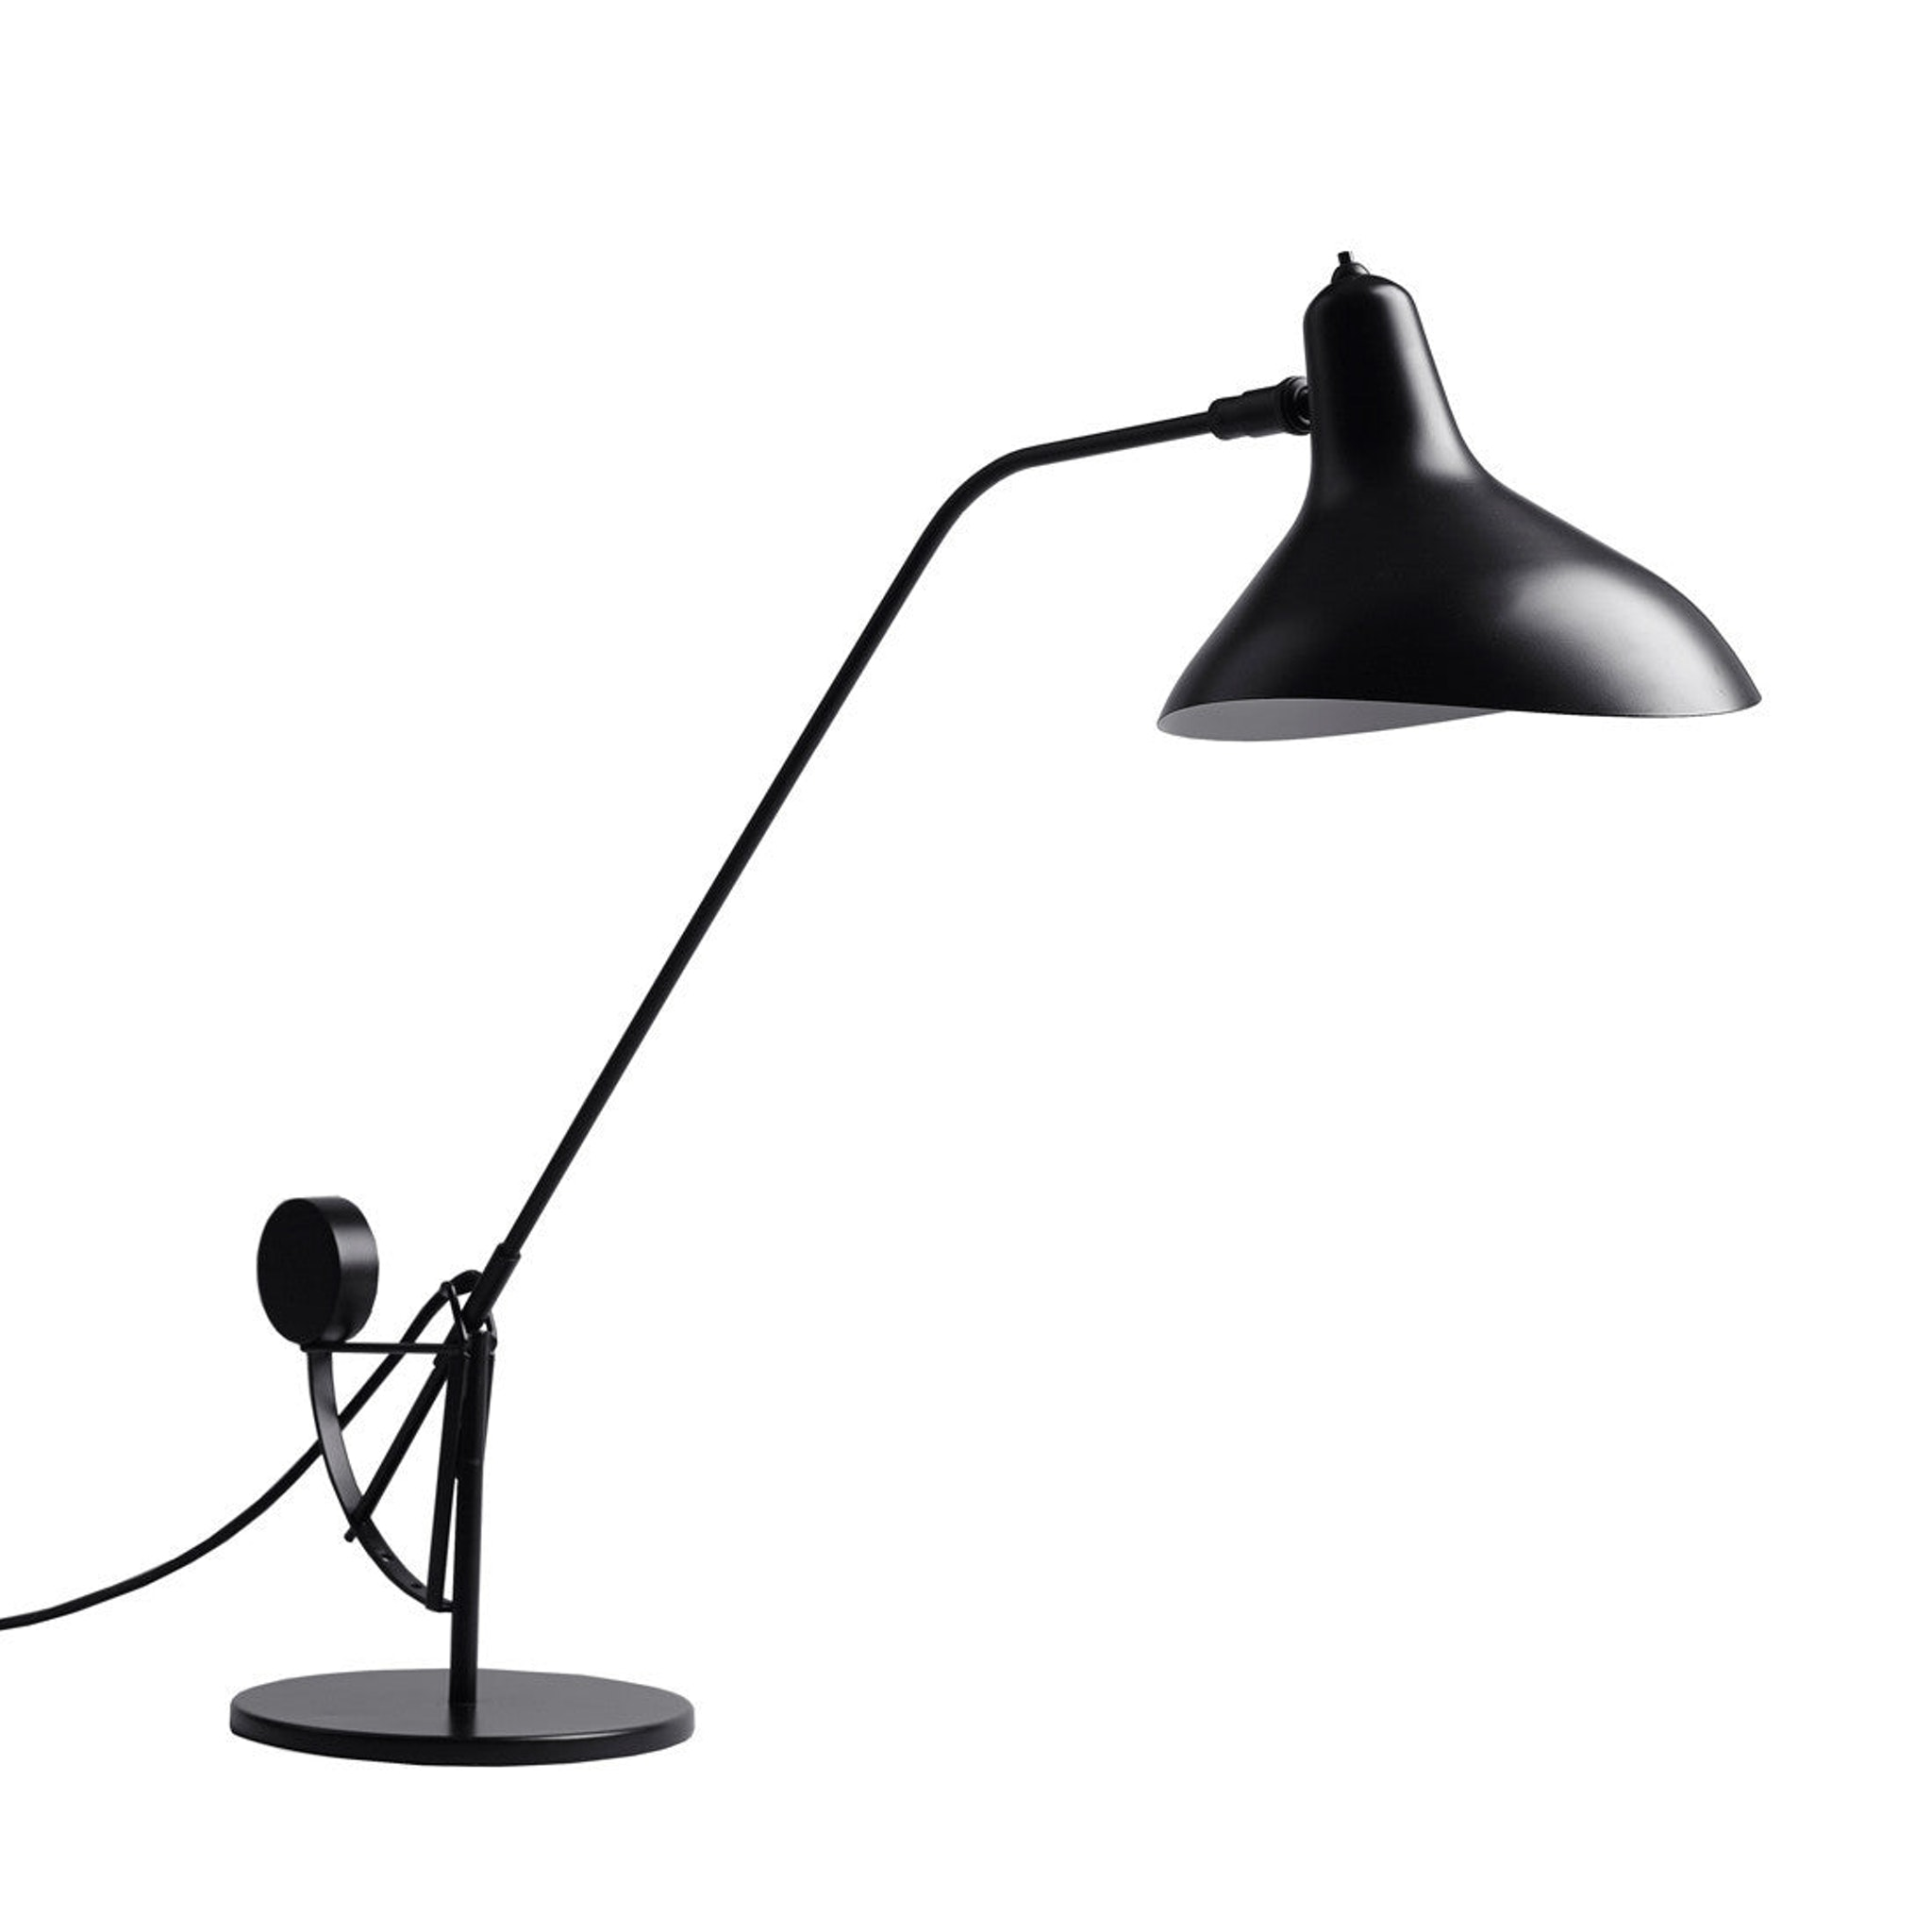 Mantis BS3 Table Lamp by Bernard Schottlander